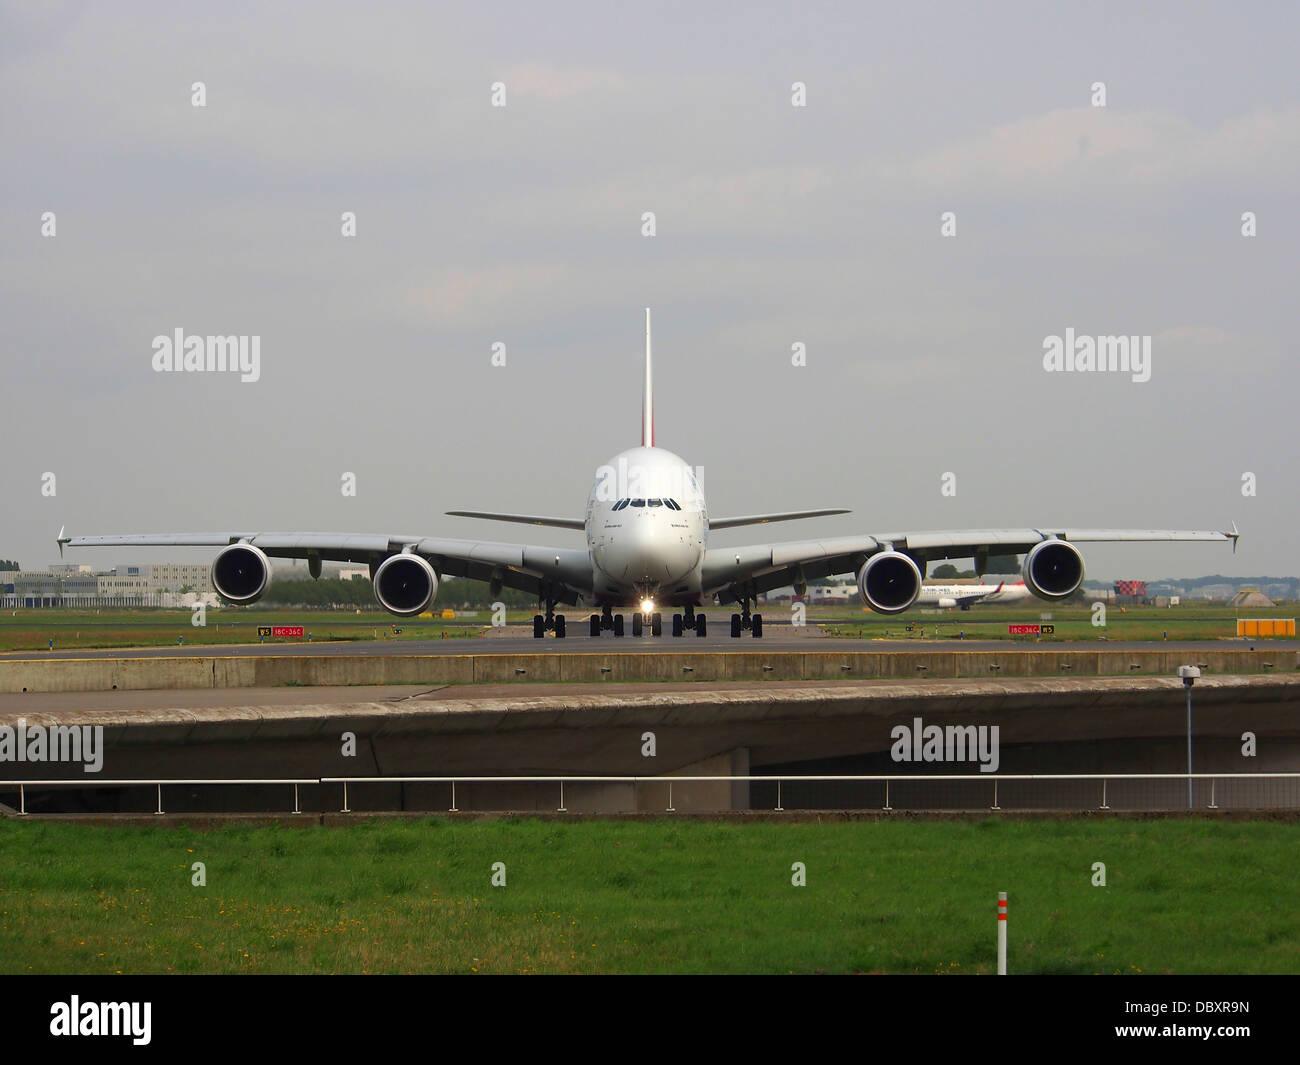 A6-EDW Emirates Airbus A380-861 - cn 103 taxiing 14july2013 -001 - Stock Image